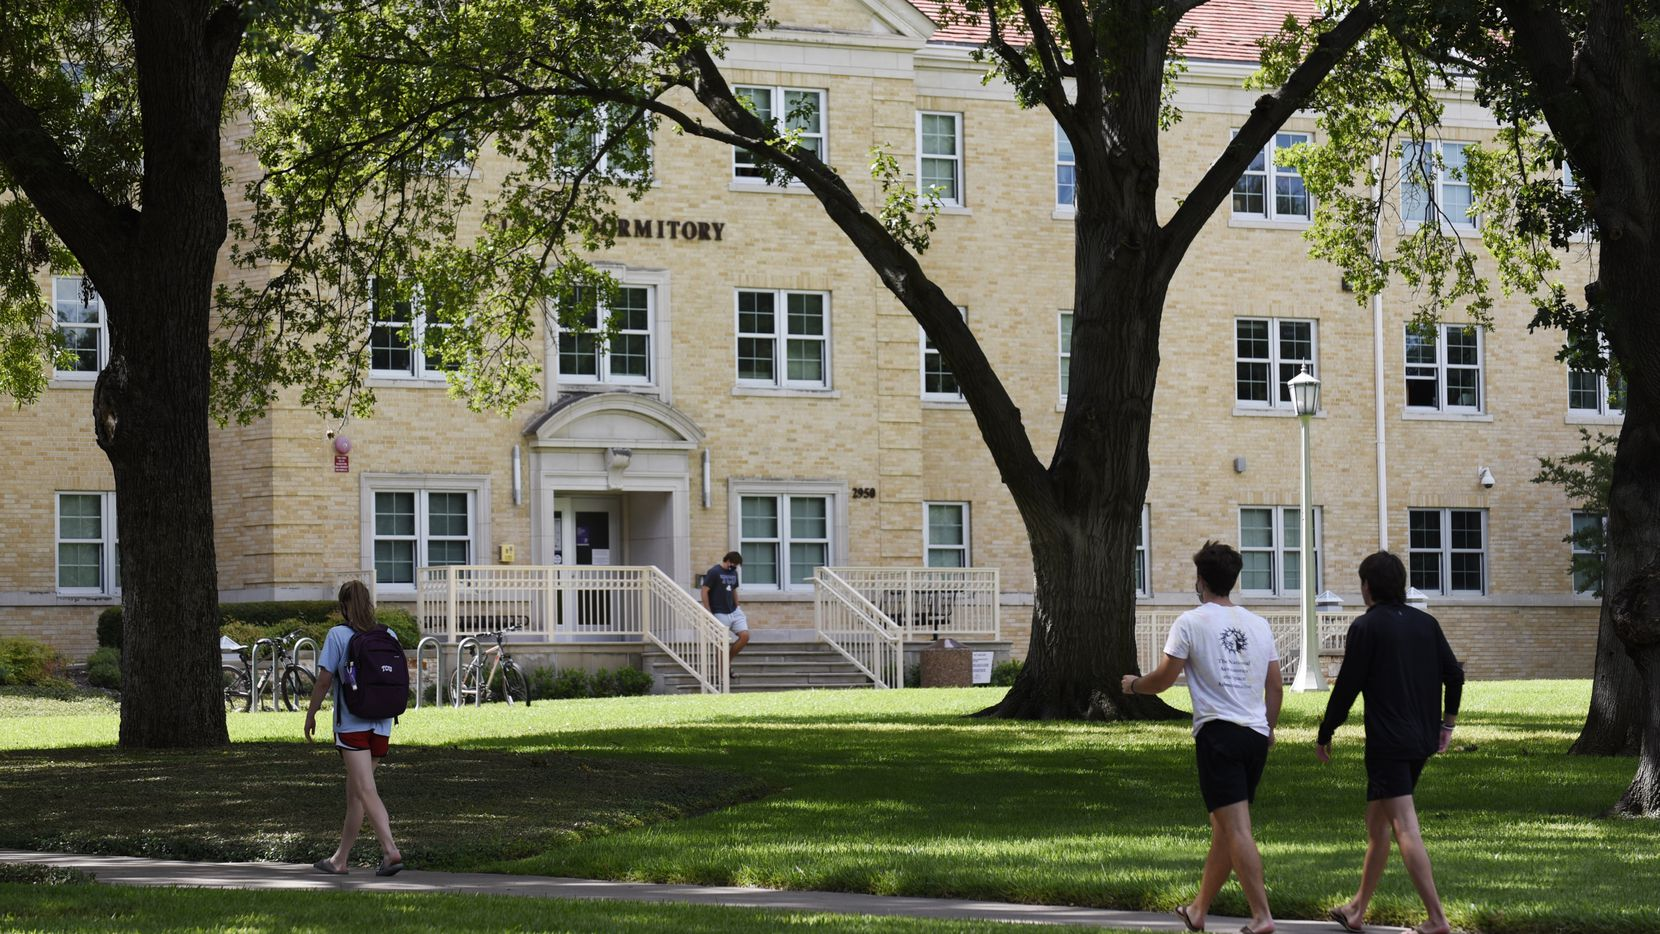 Texas Christian University students walk toward the Clark Hall dormitory on the campus of TCU in Fort Worth on Aug. 27, 2020.